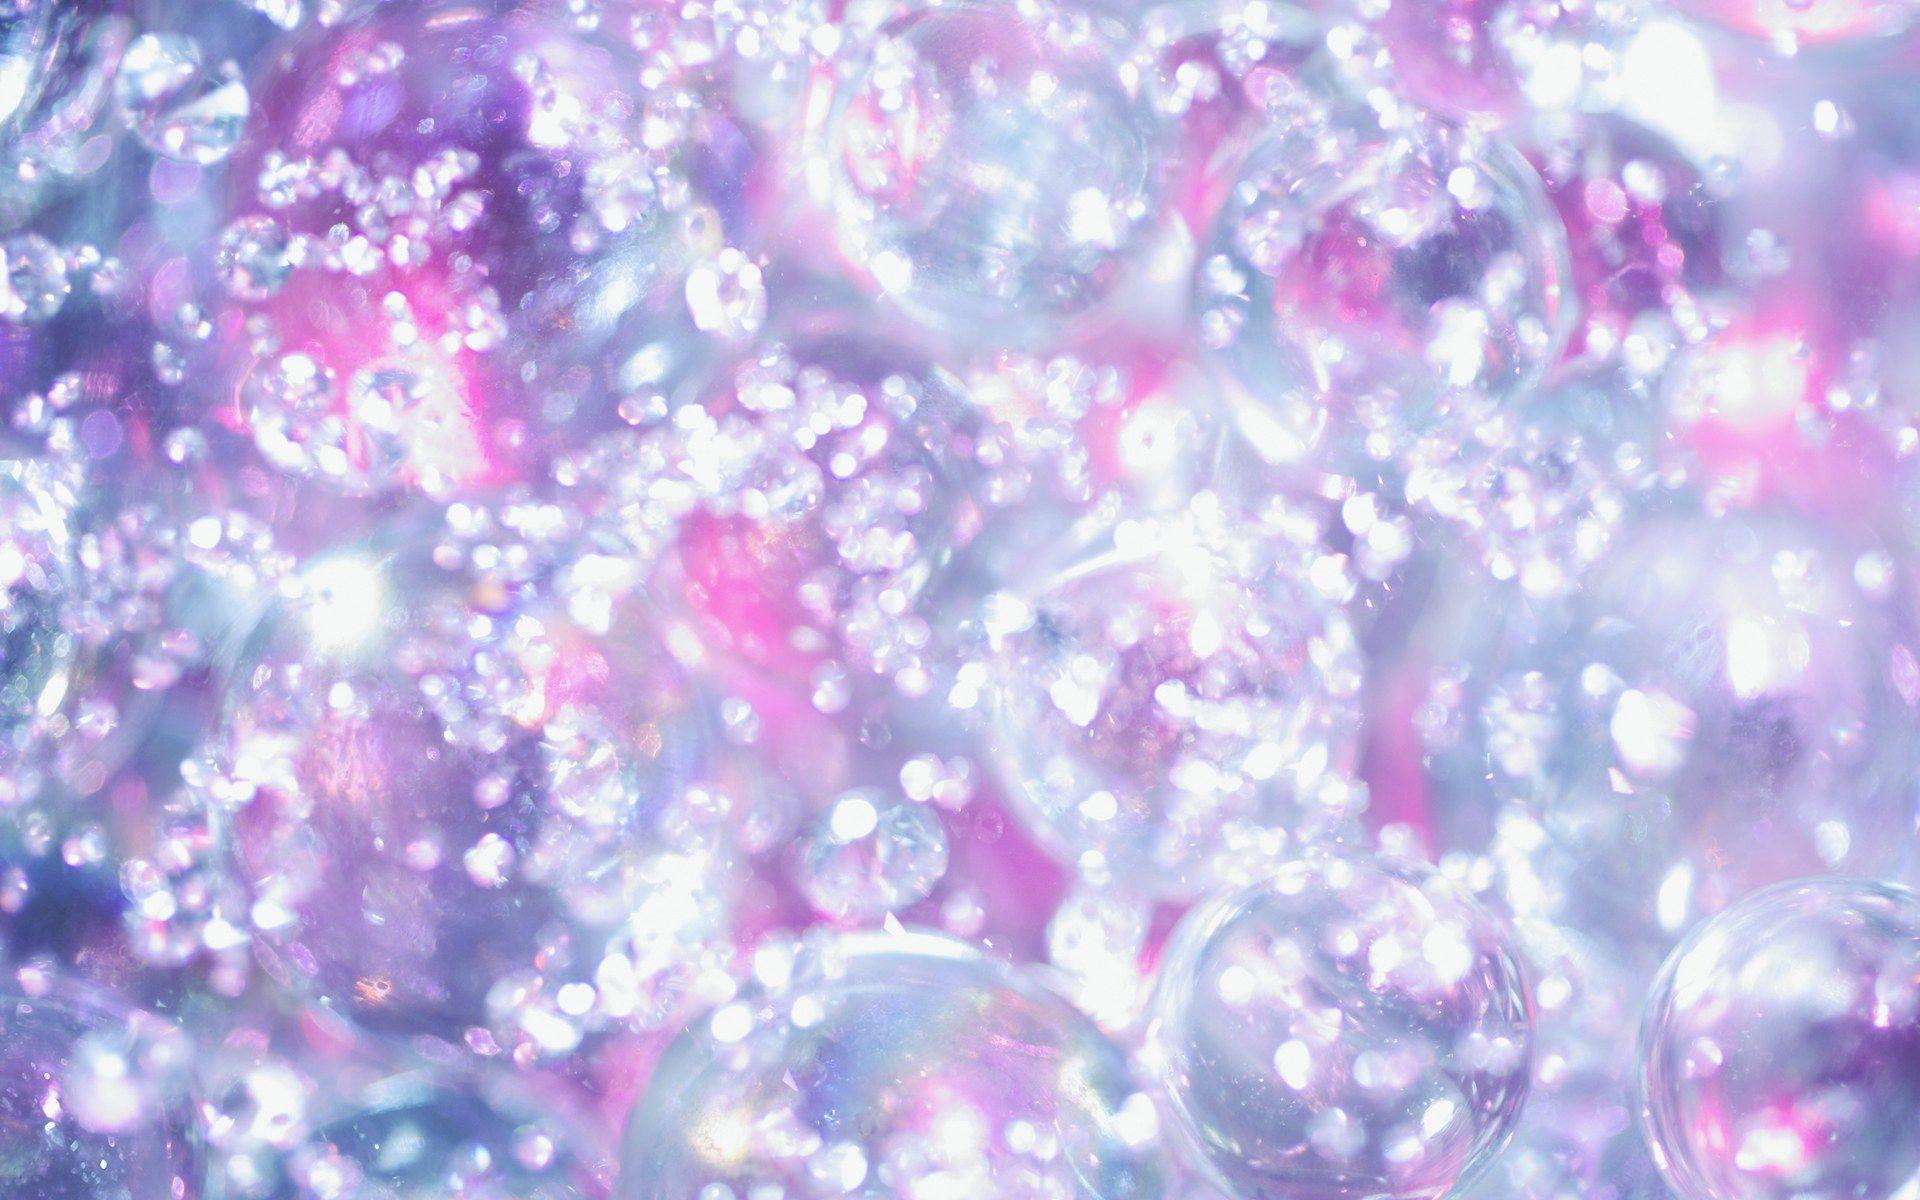 Sparkle Backgrounds 1920x1200